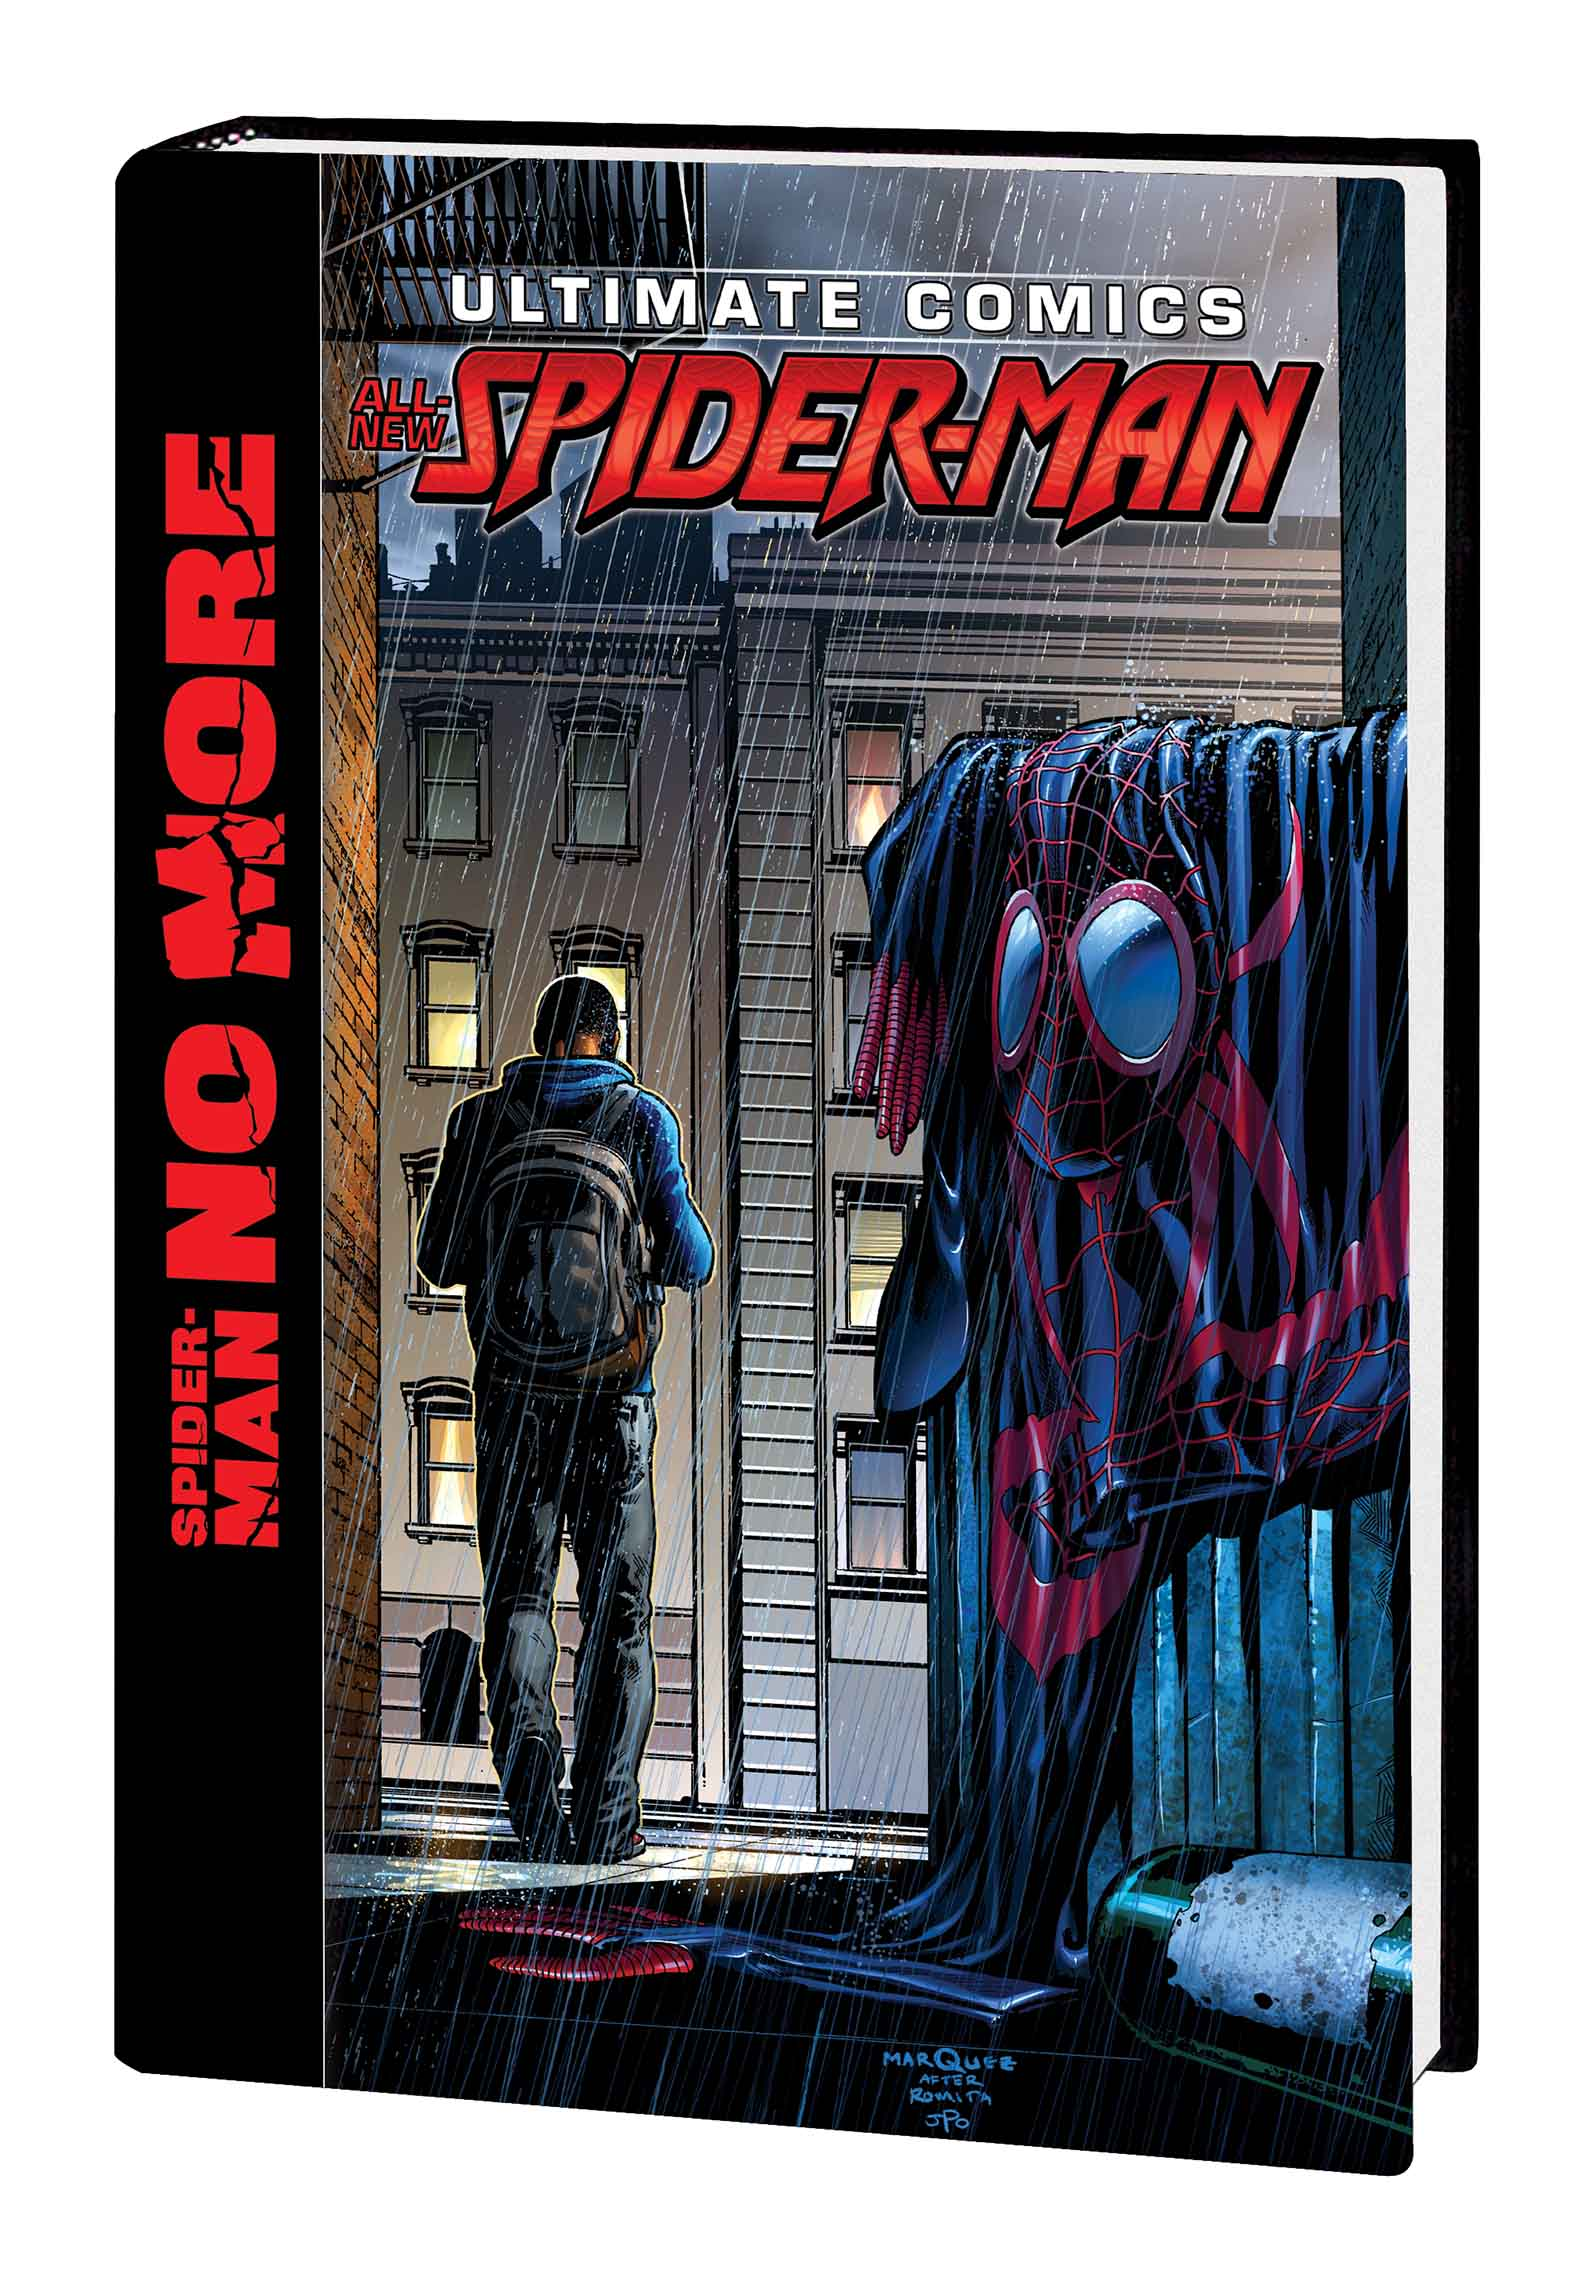 Ultimate Comics Spider-Man by Brian Michael Bendis Vol. 5 (Hardcover)